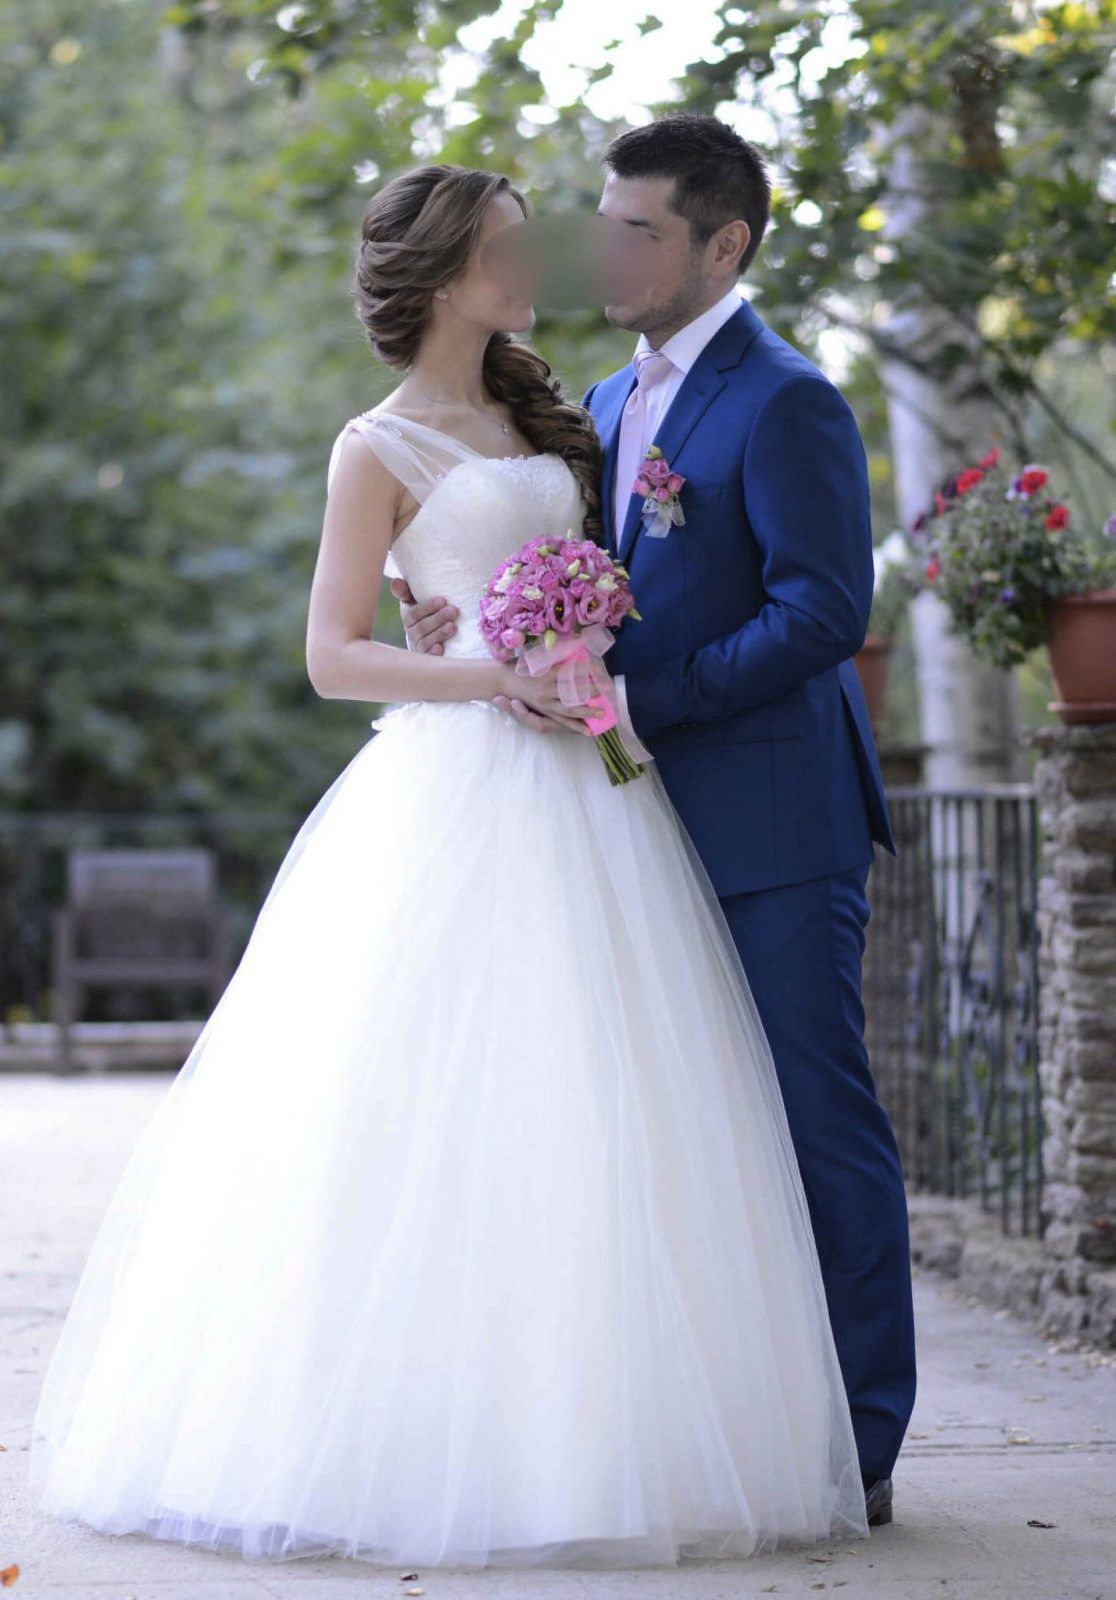 Mexican style wedding dress  White Strapless Ball Gown Wedding Dress US size   Wedding